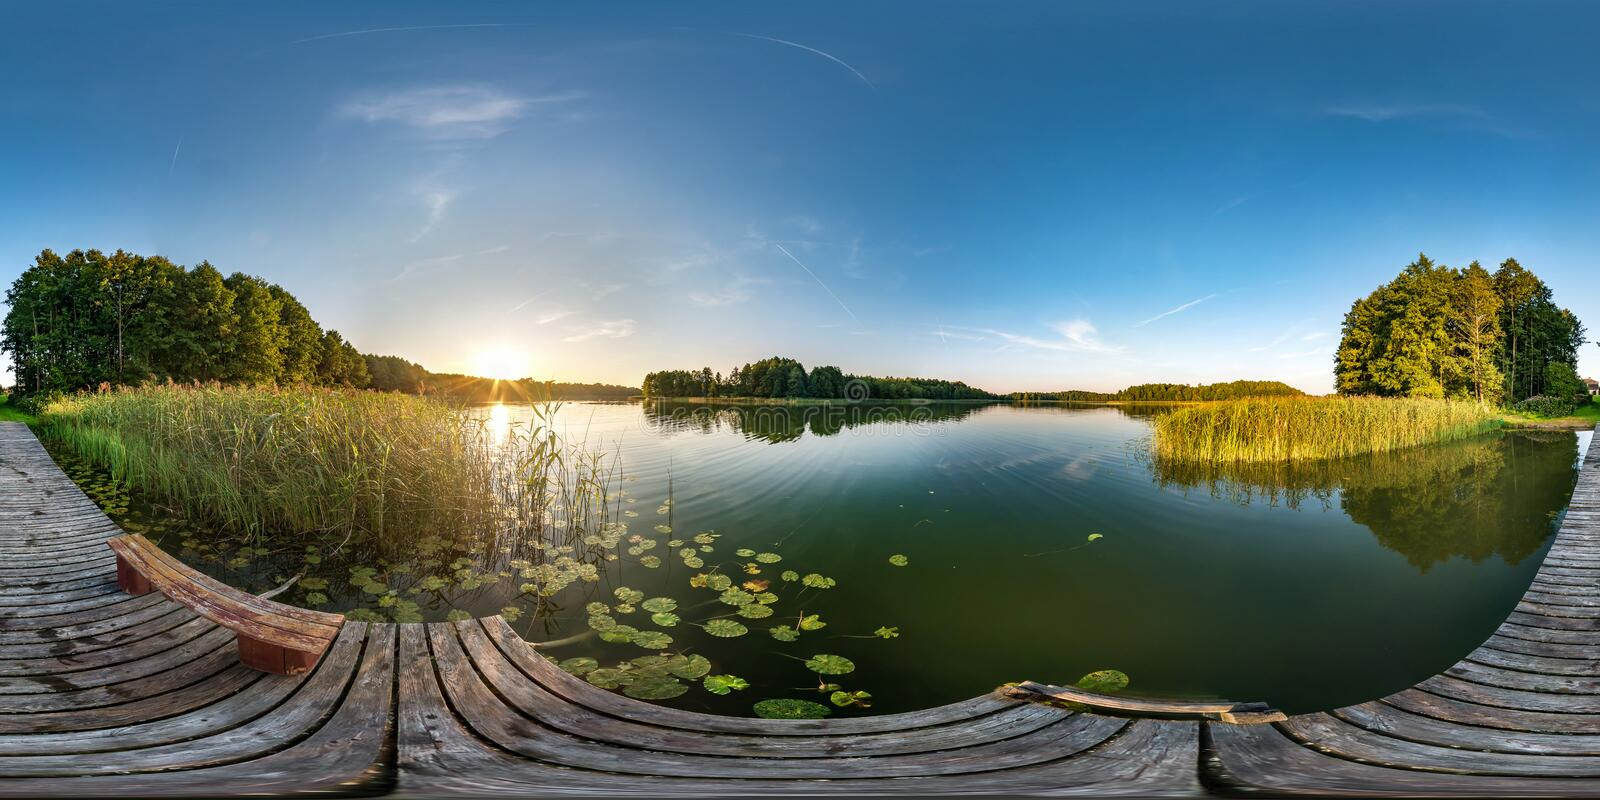 Full seamless spherical hdri panorama 360 degrees angle view on wooden pier near lake in evening in equirectangular projection. With zenith, ready VR AR virtual royalty free stock photo